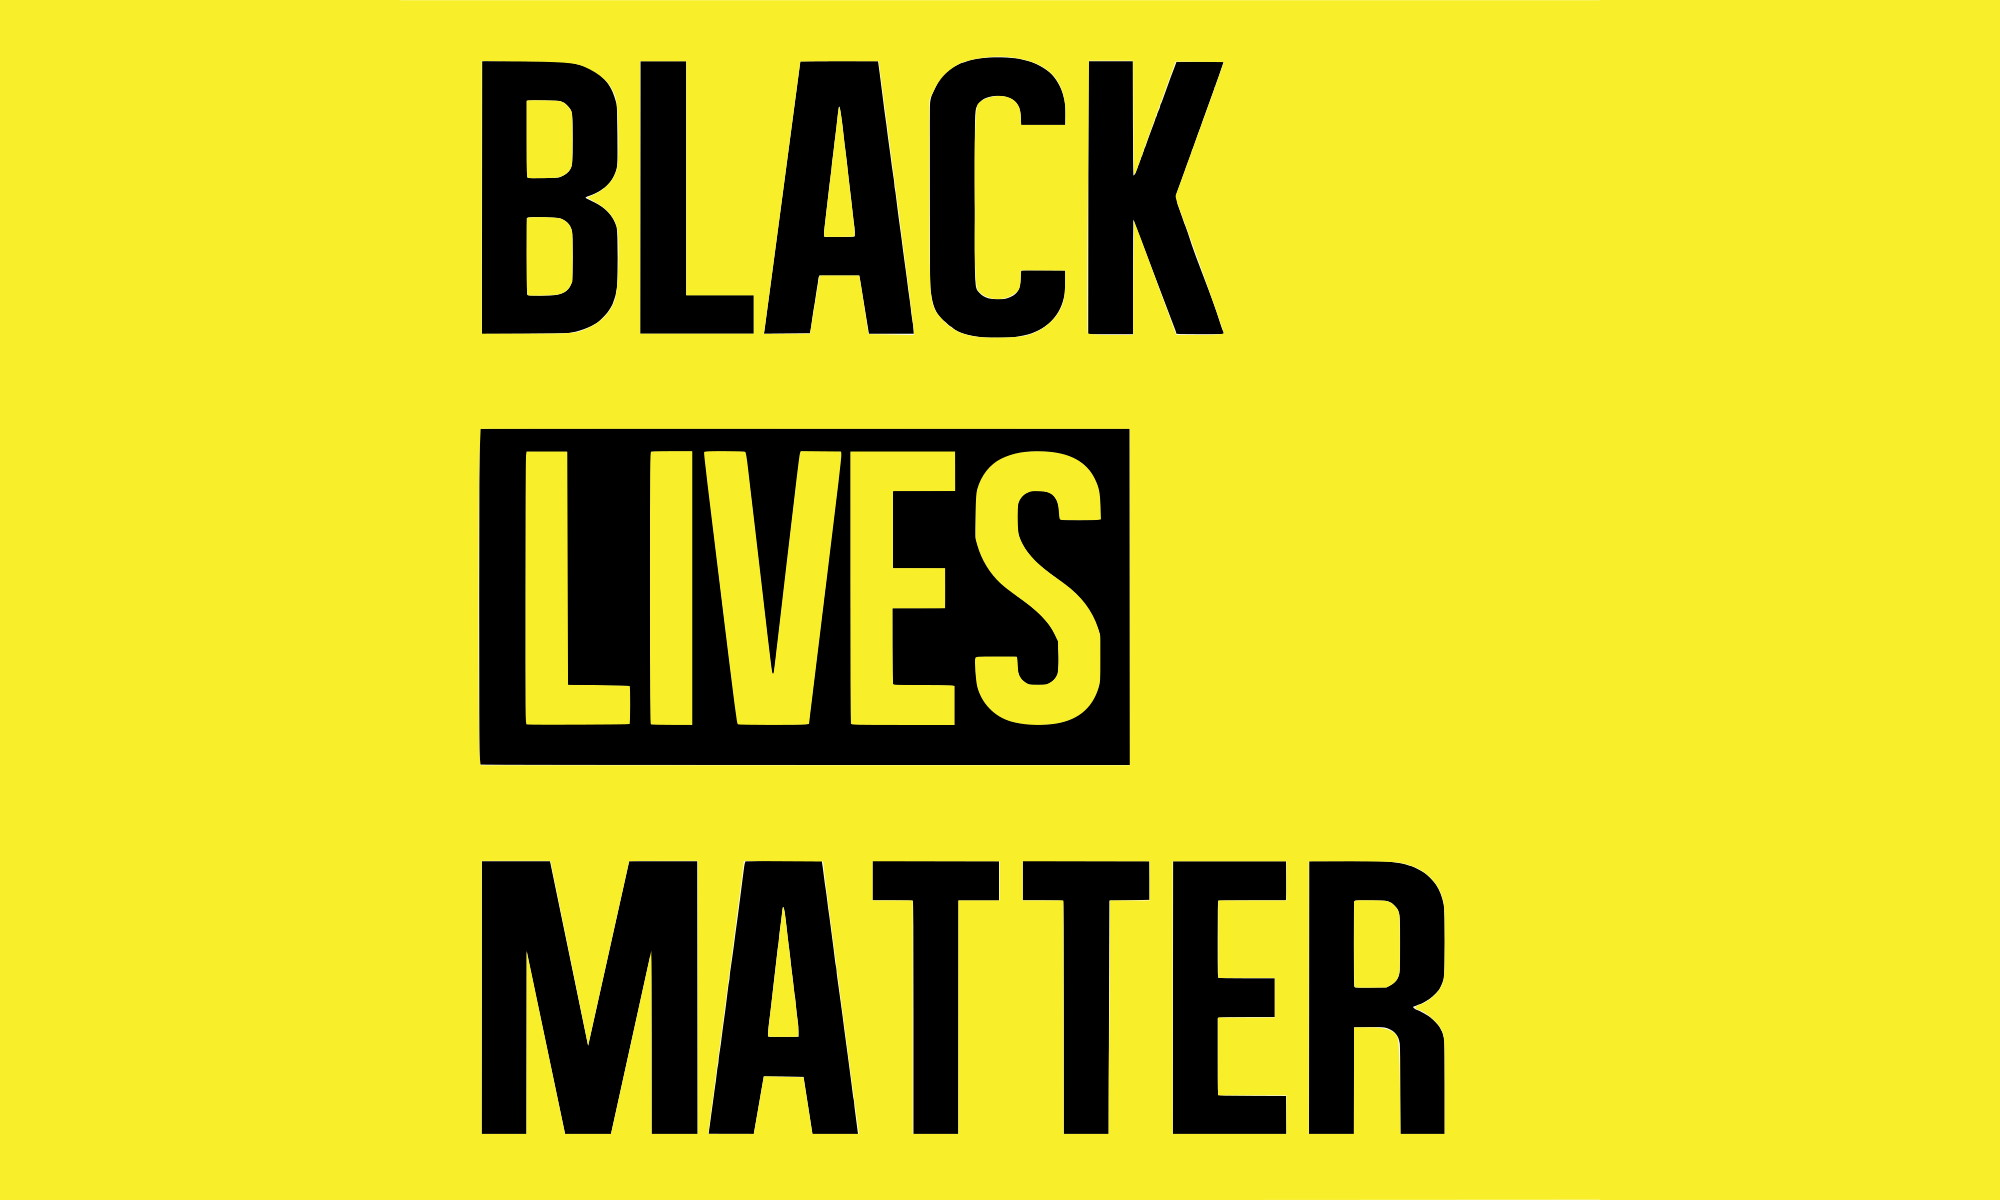 Has the games industry lived up to its Black Lives Matter promises?